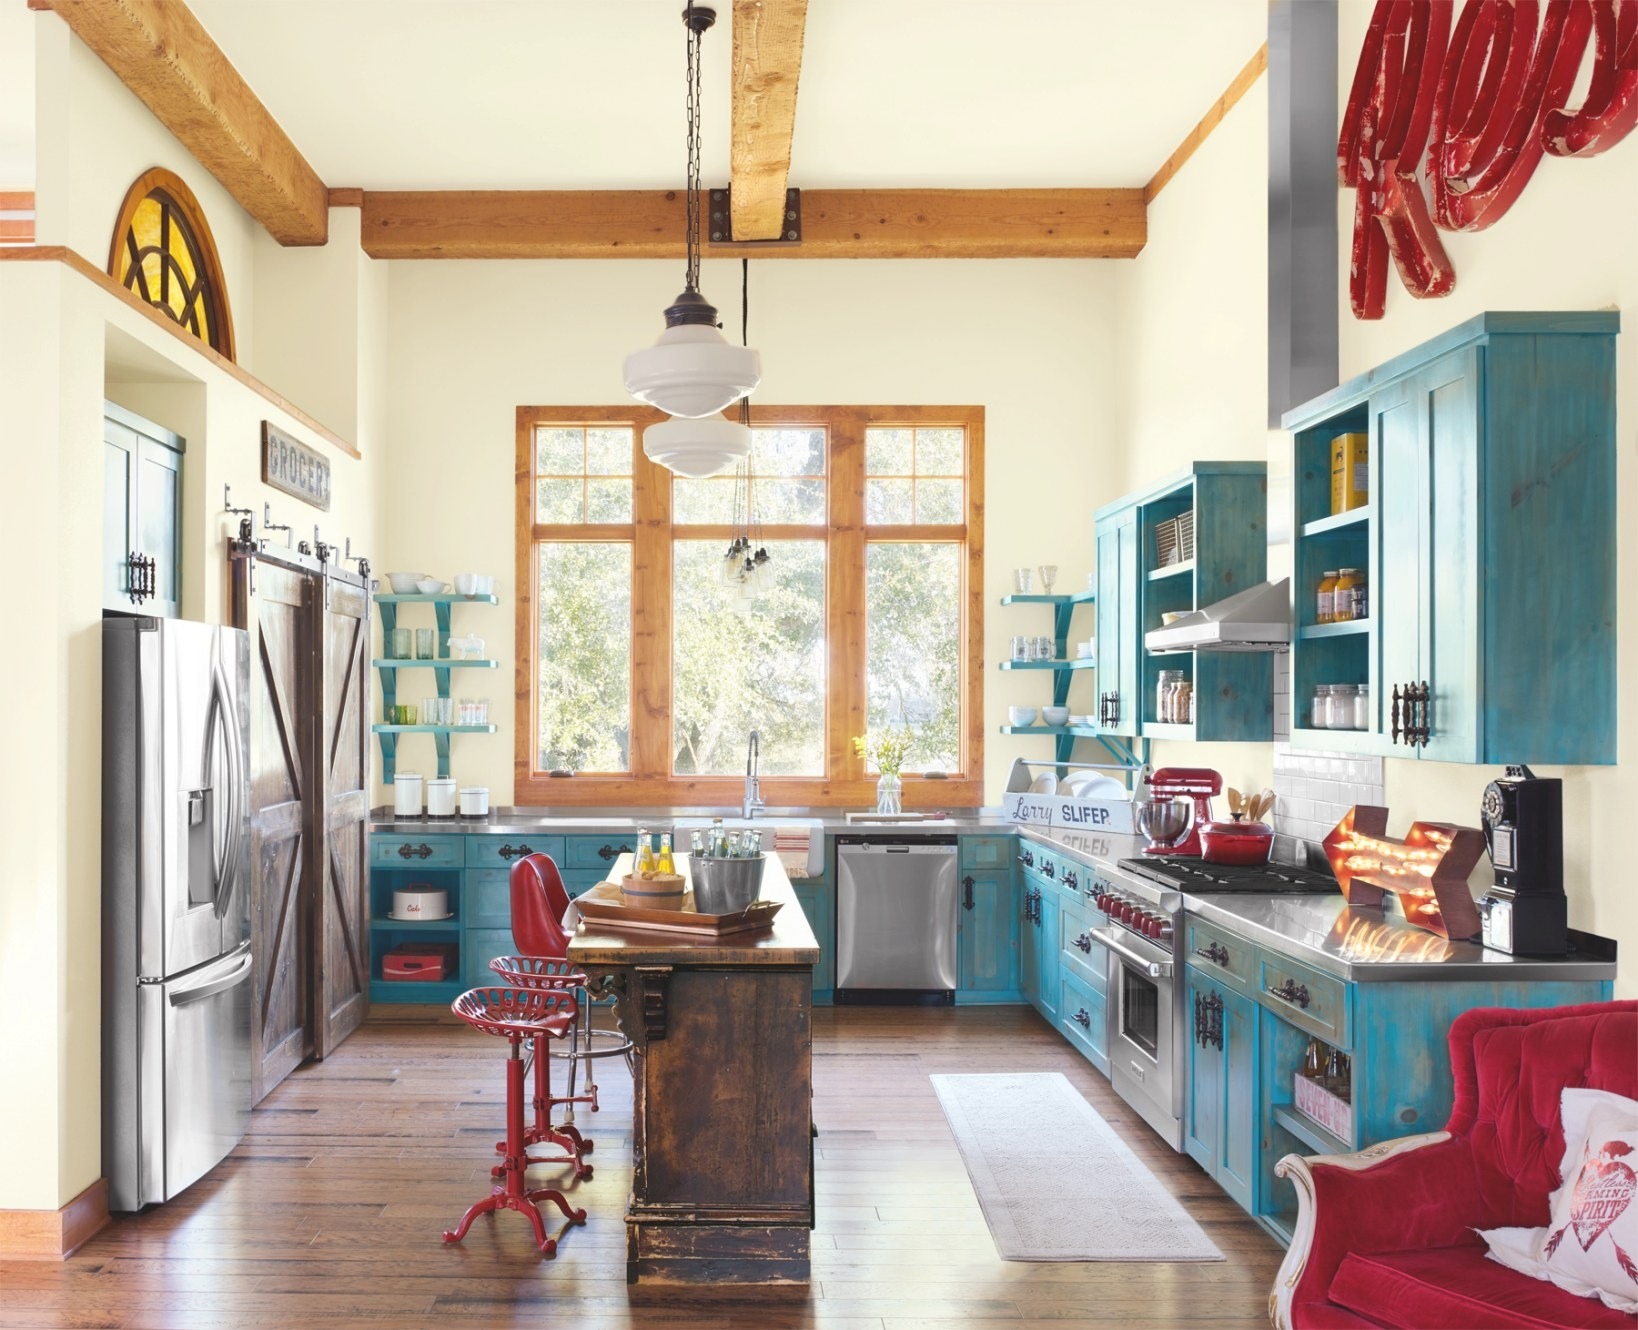 10 Ways To Add Colorful Vintage Style To Your Kitchen within Yellow And Turquoise Kitchen